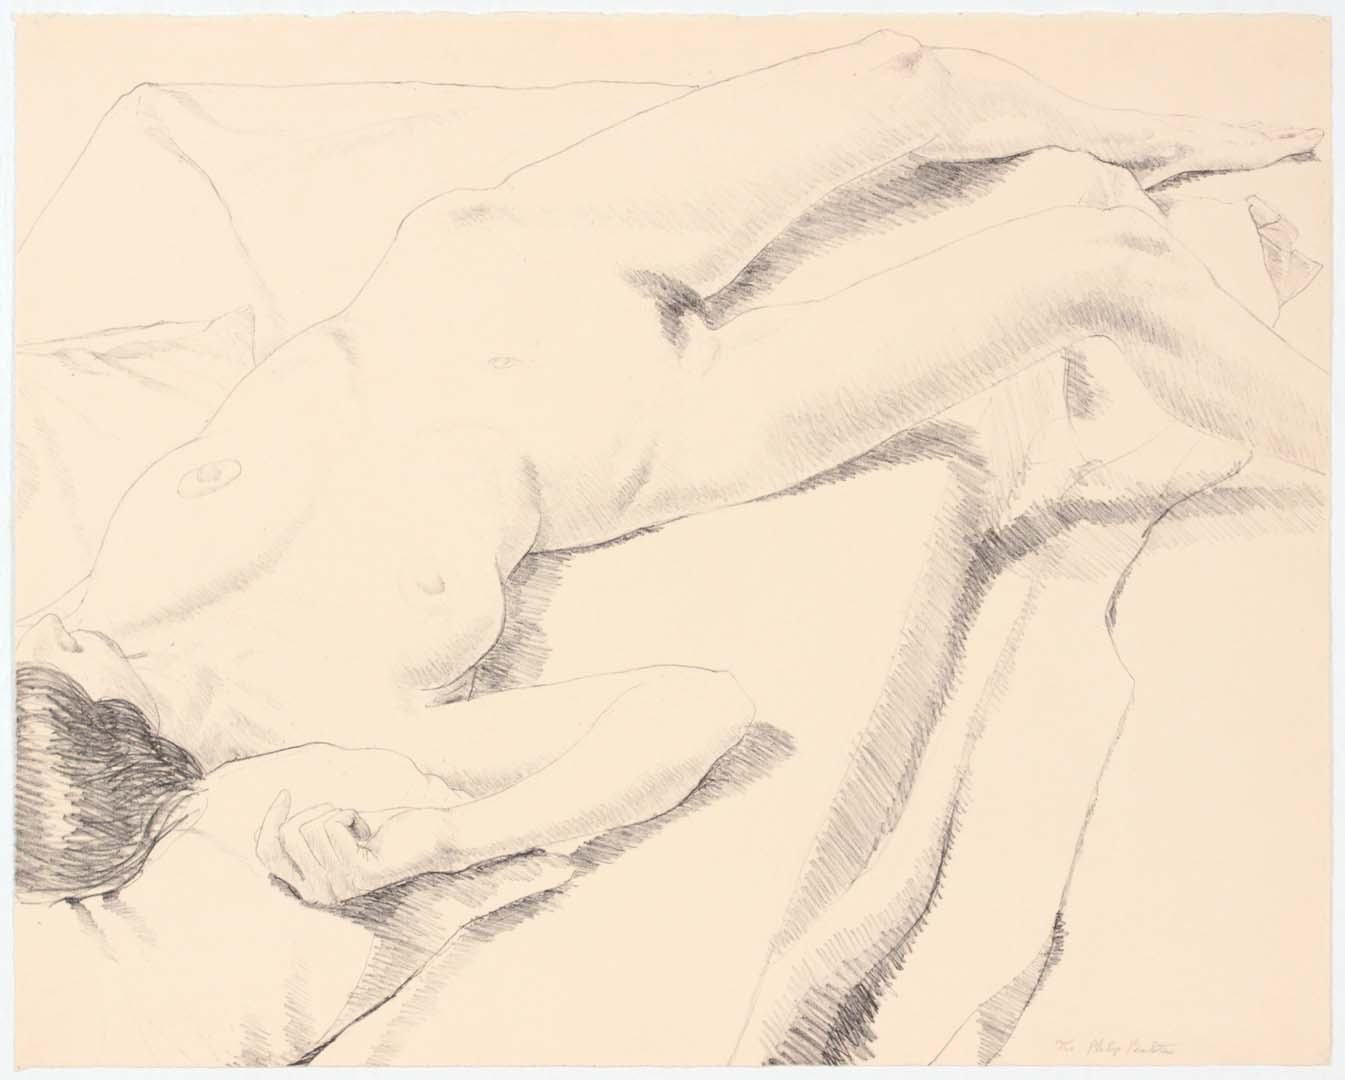 1968 Diagonal Nude Lithograph on Paper 20 x 25.125